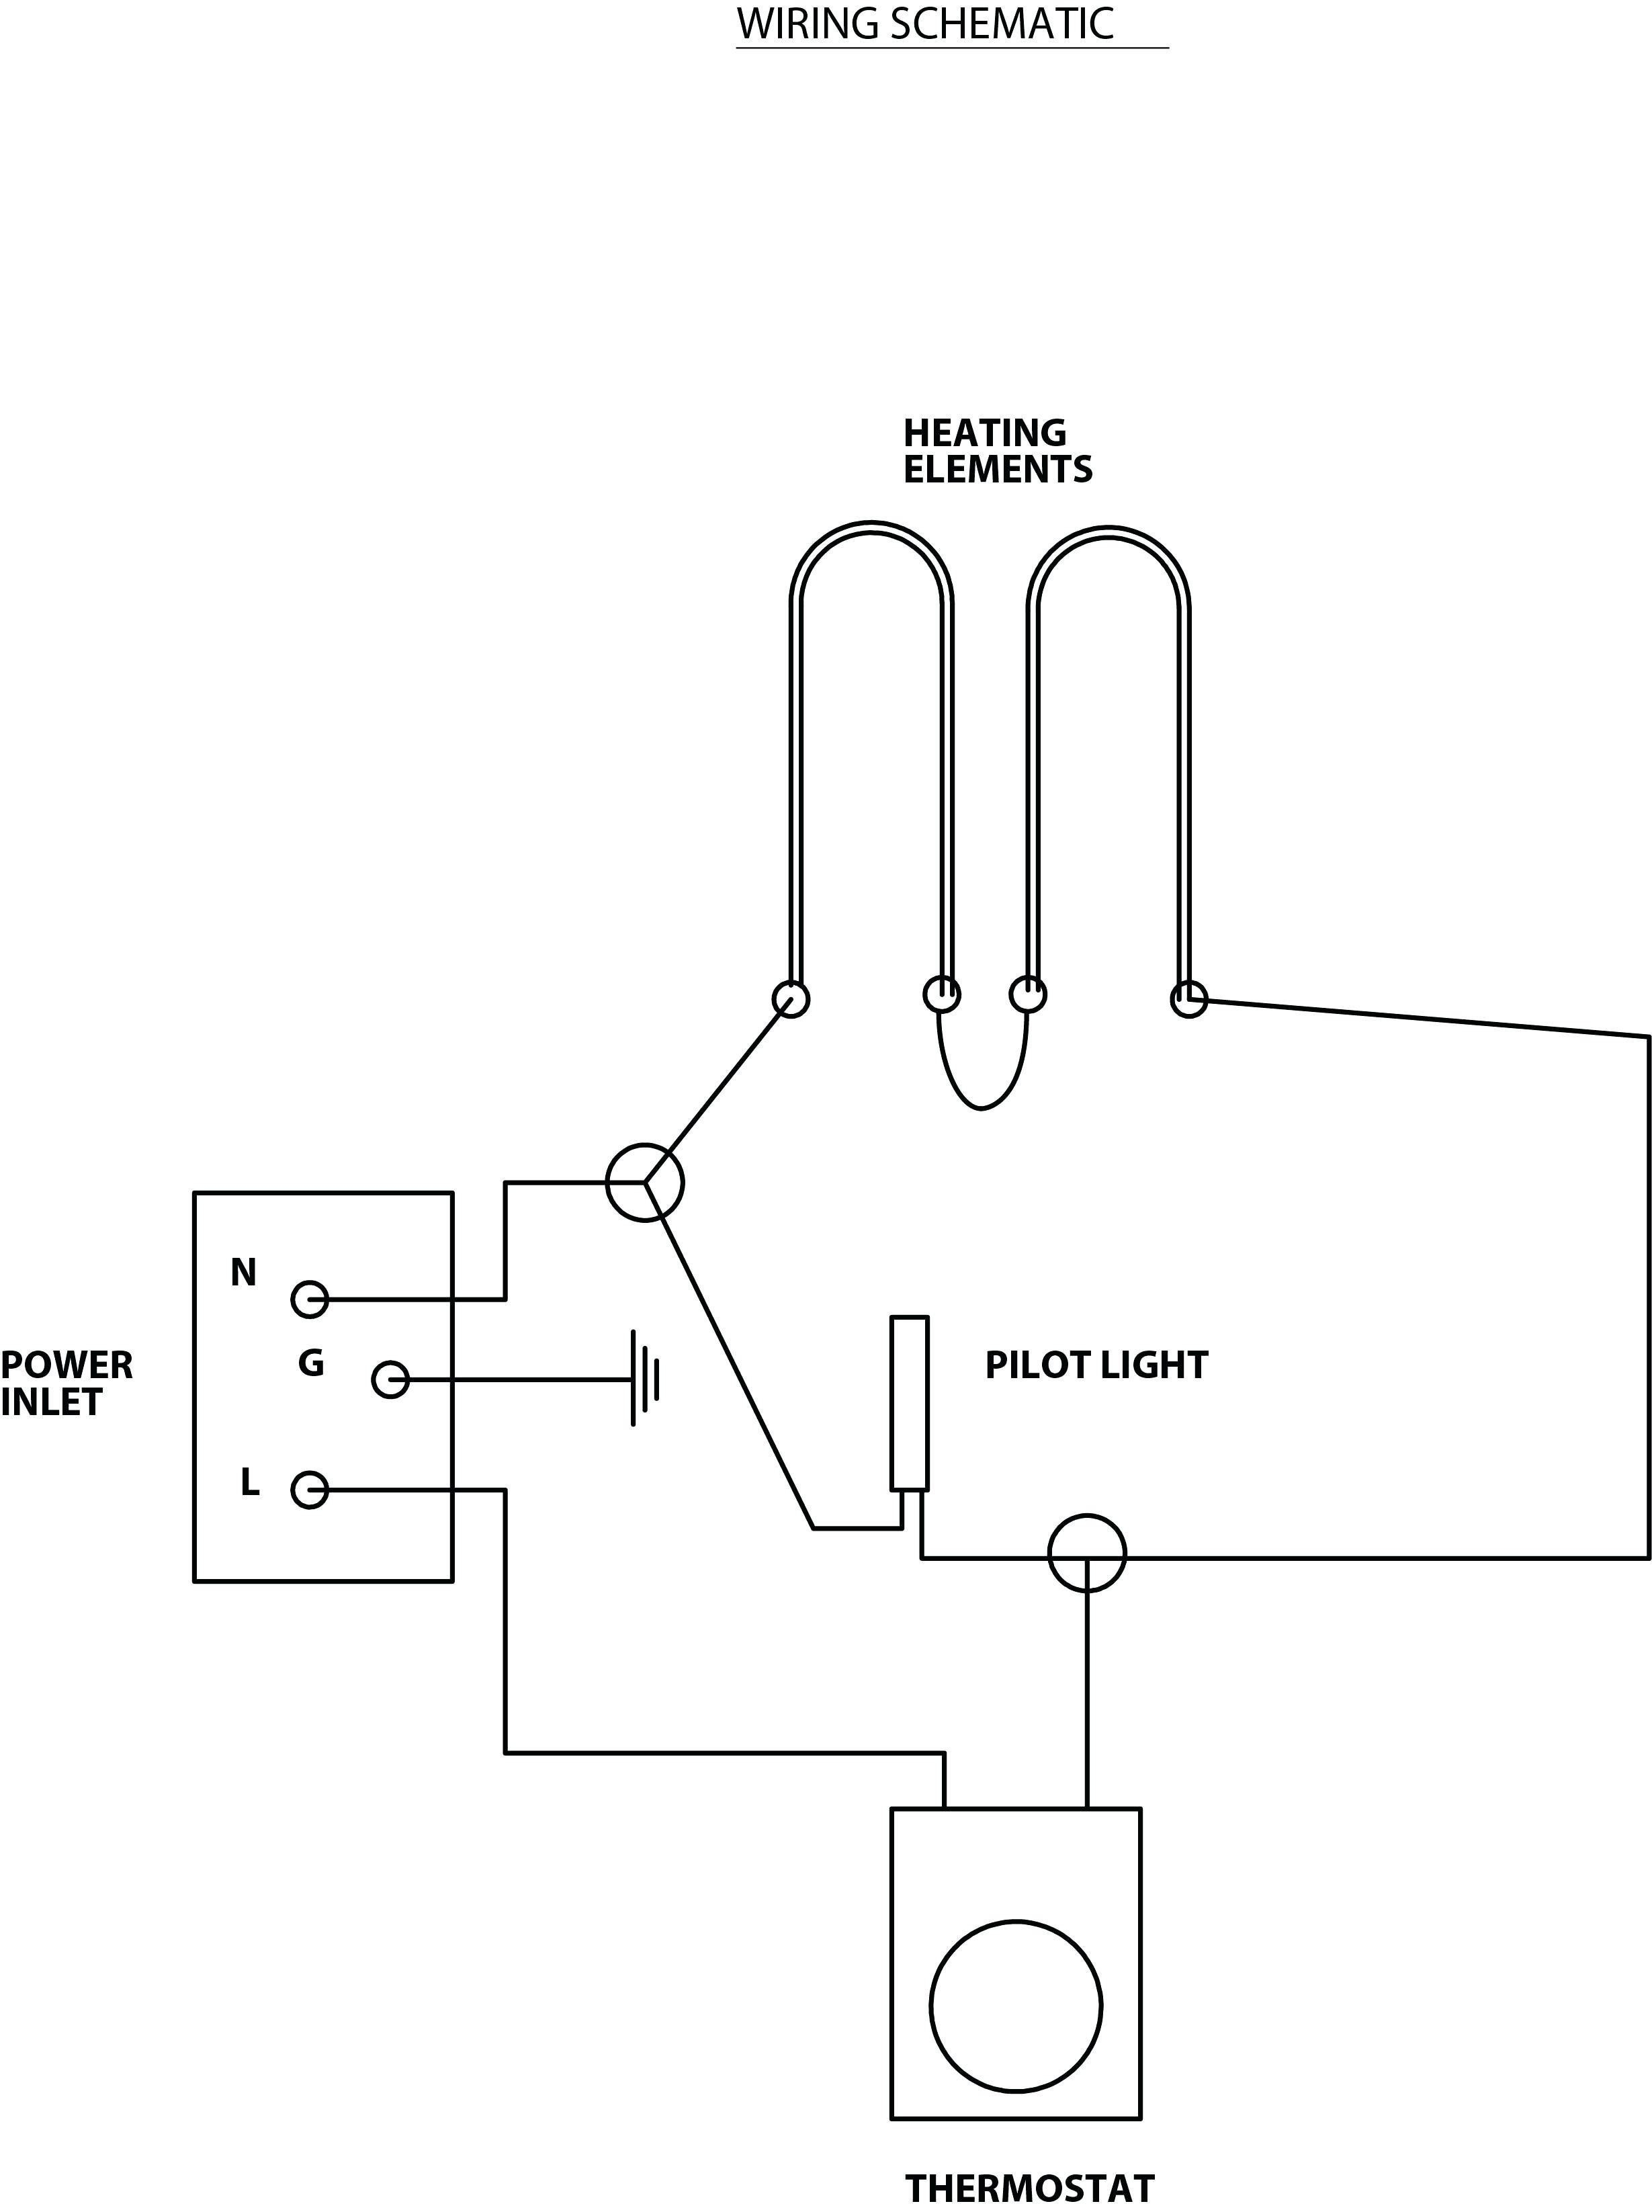 Free Download Electric Guitar Wiring Diagram